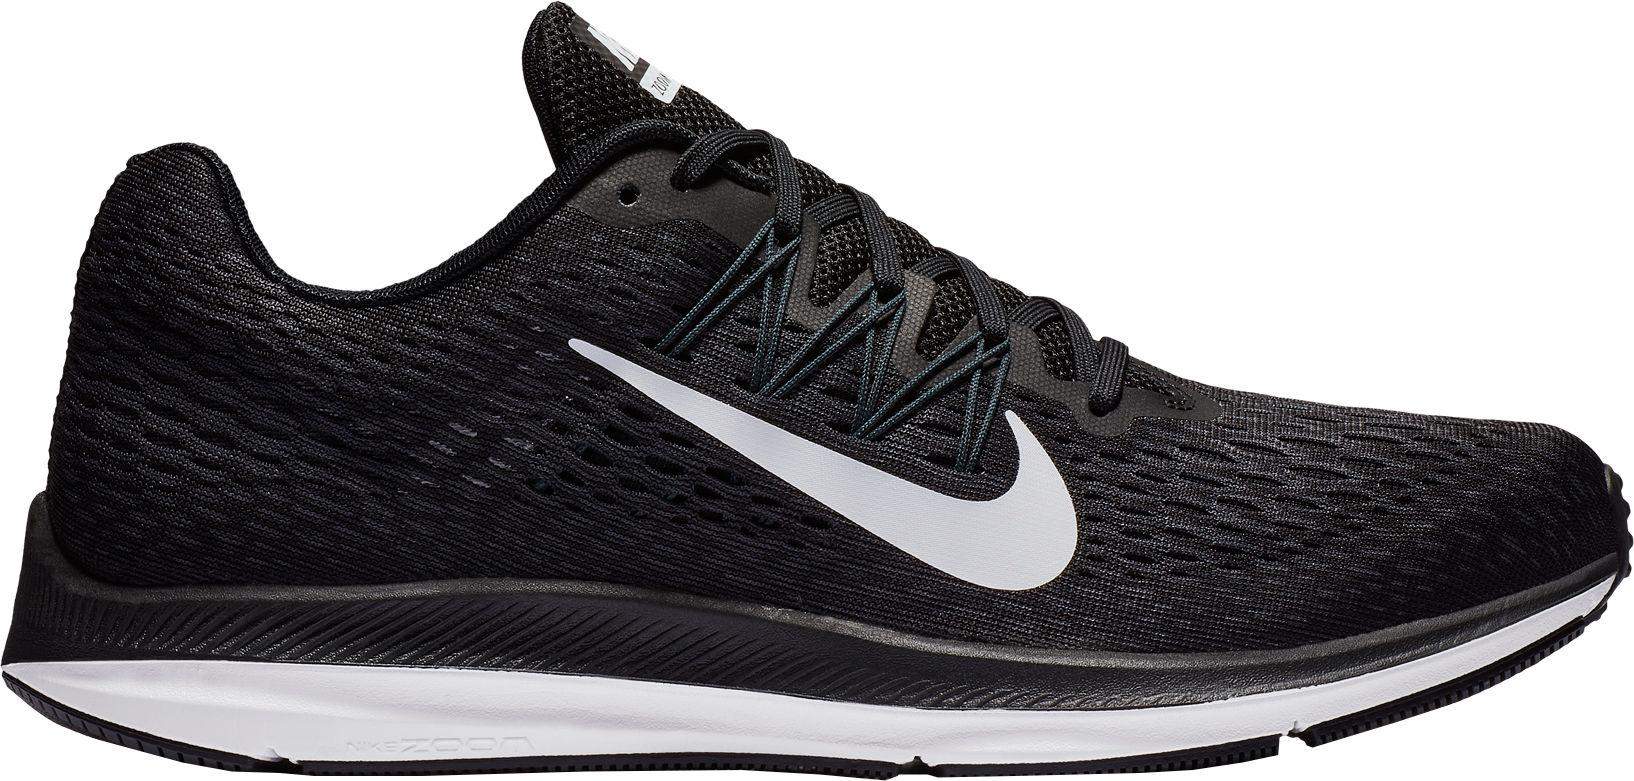 e97a5077c405 Lyst - Nike Air Zoom Winflo 5 Running Shoes in Black for Men